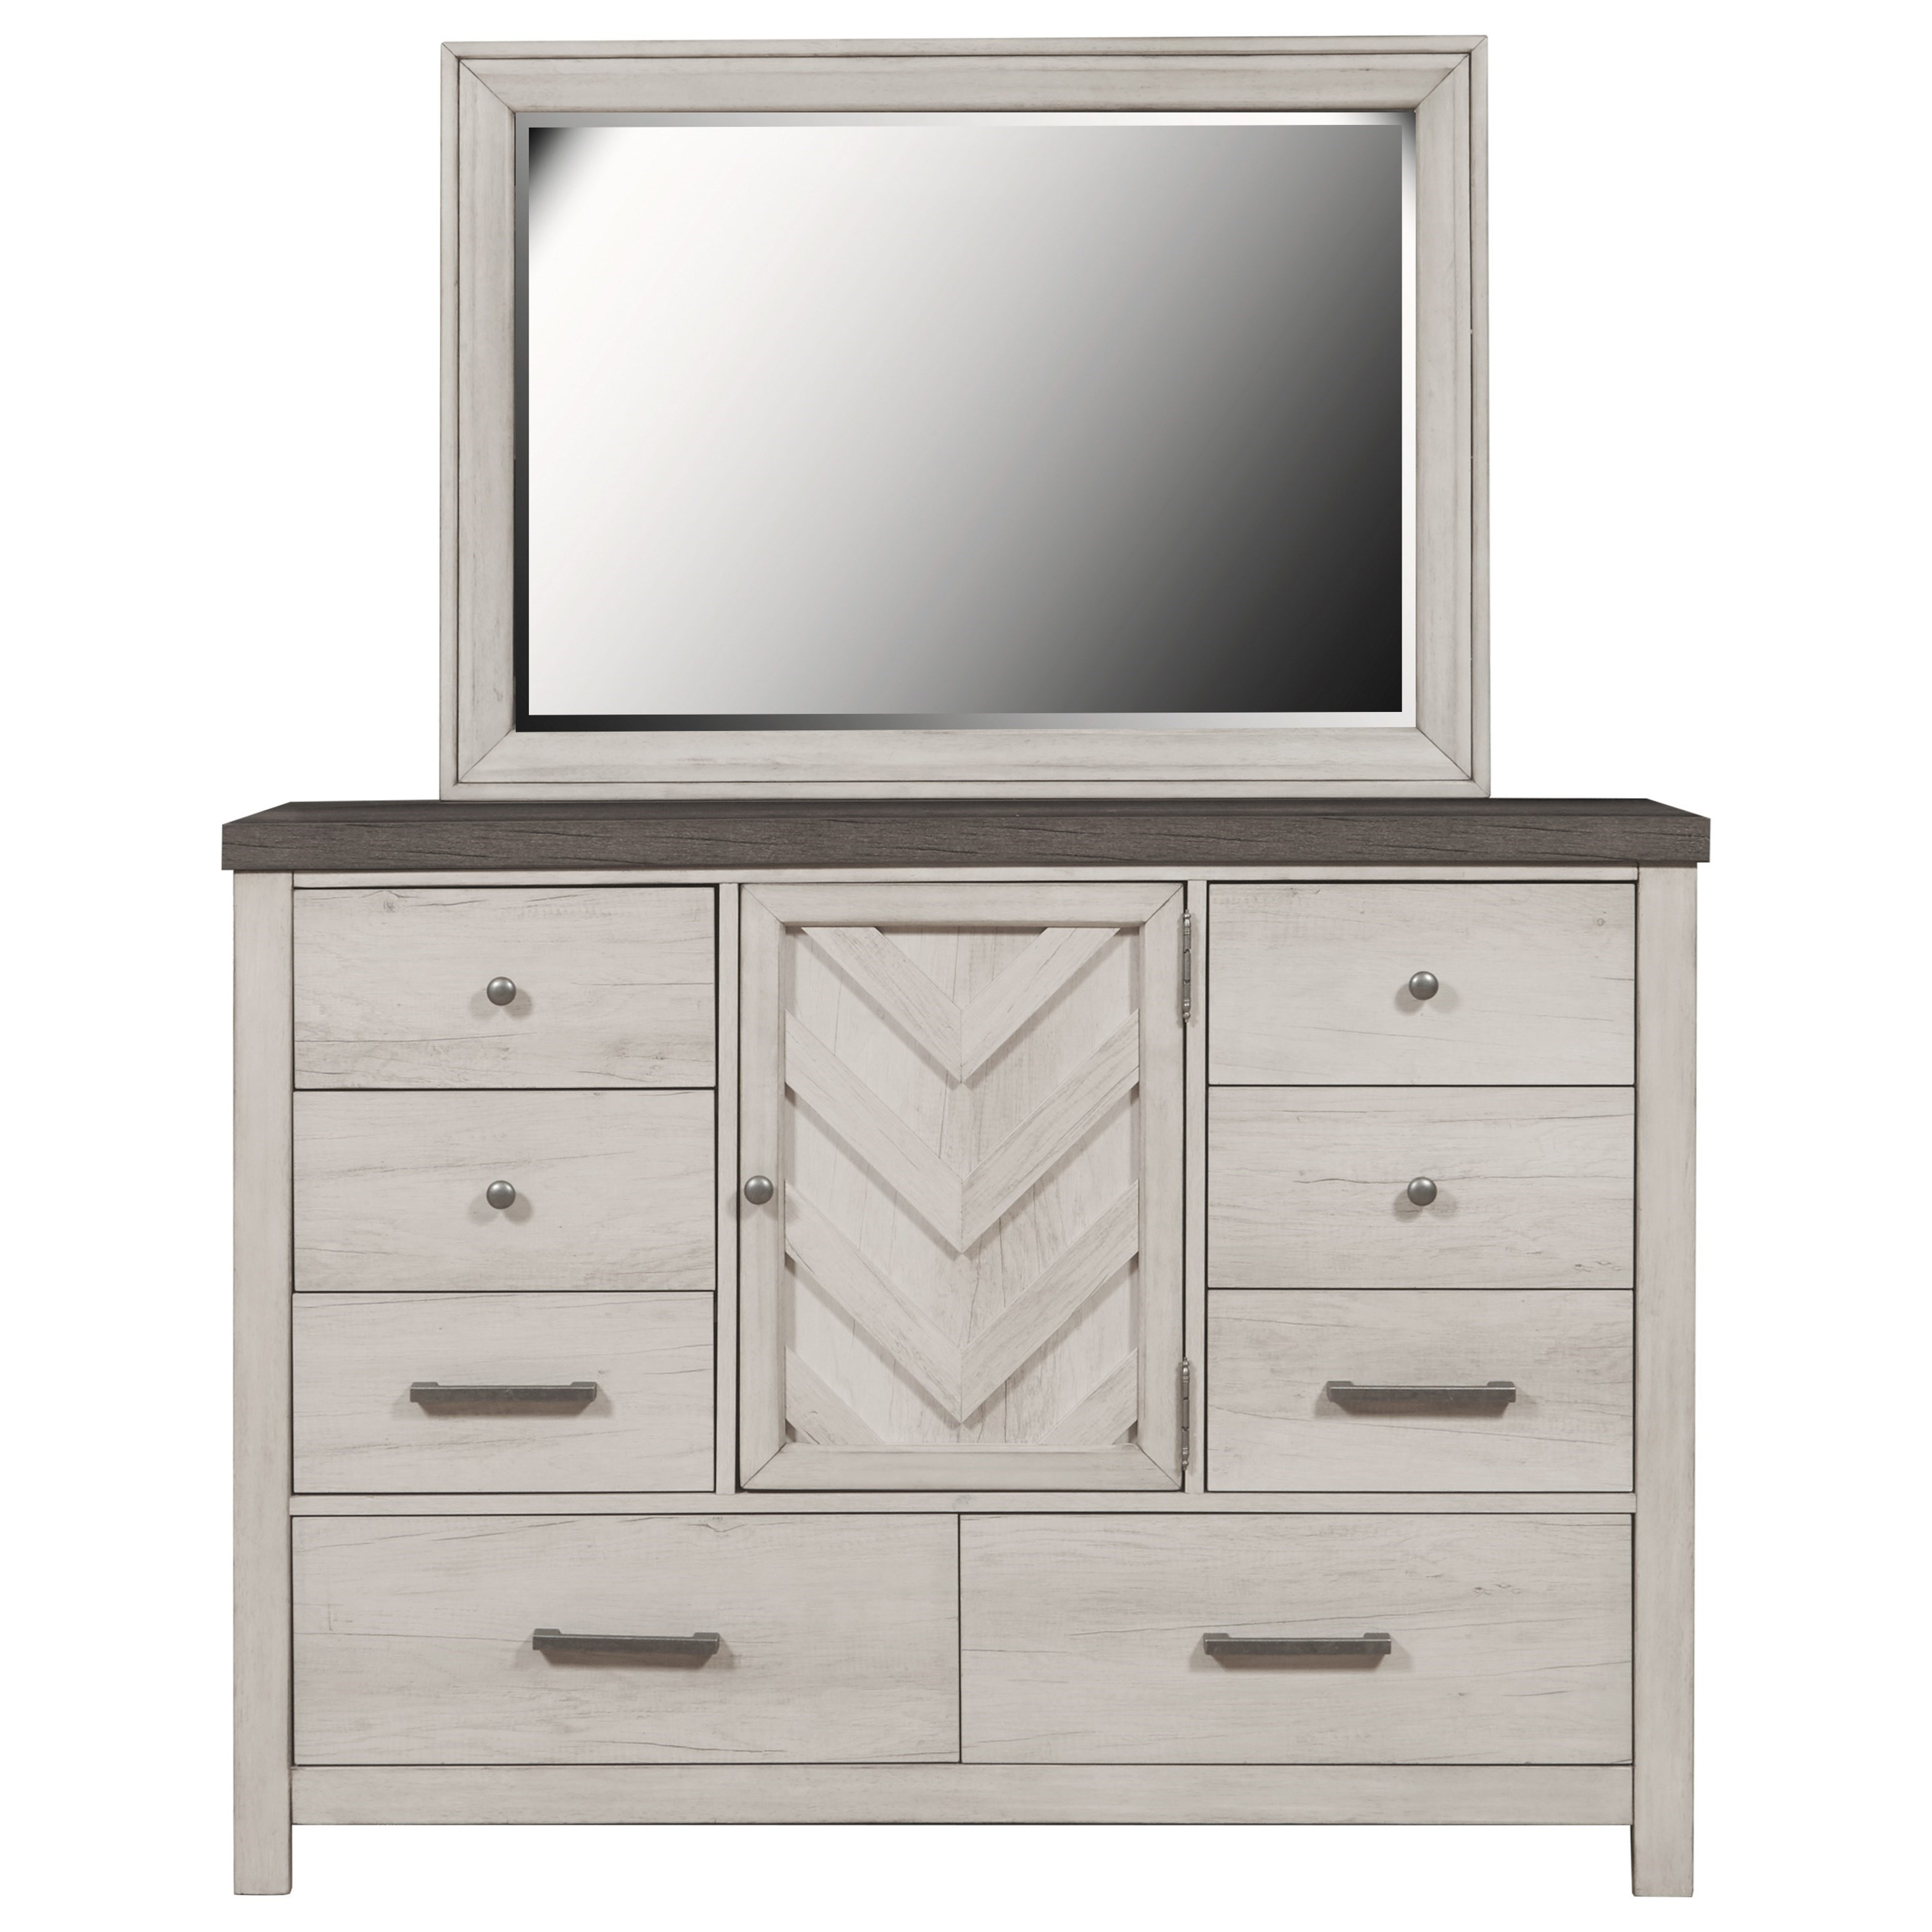 Riverwood Bureau Dresser and Mirror Set by Samuel Lawrence at Dream Home Interiors